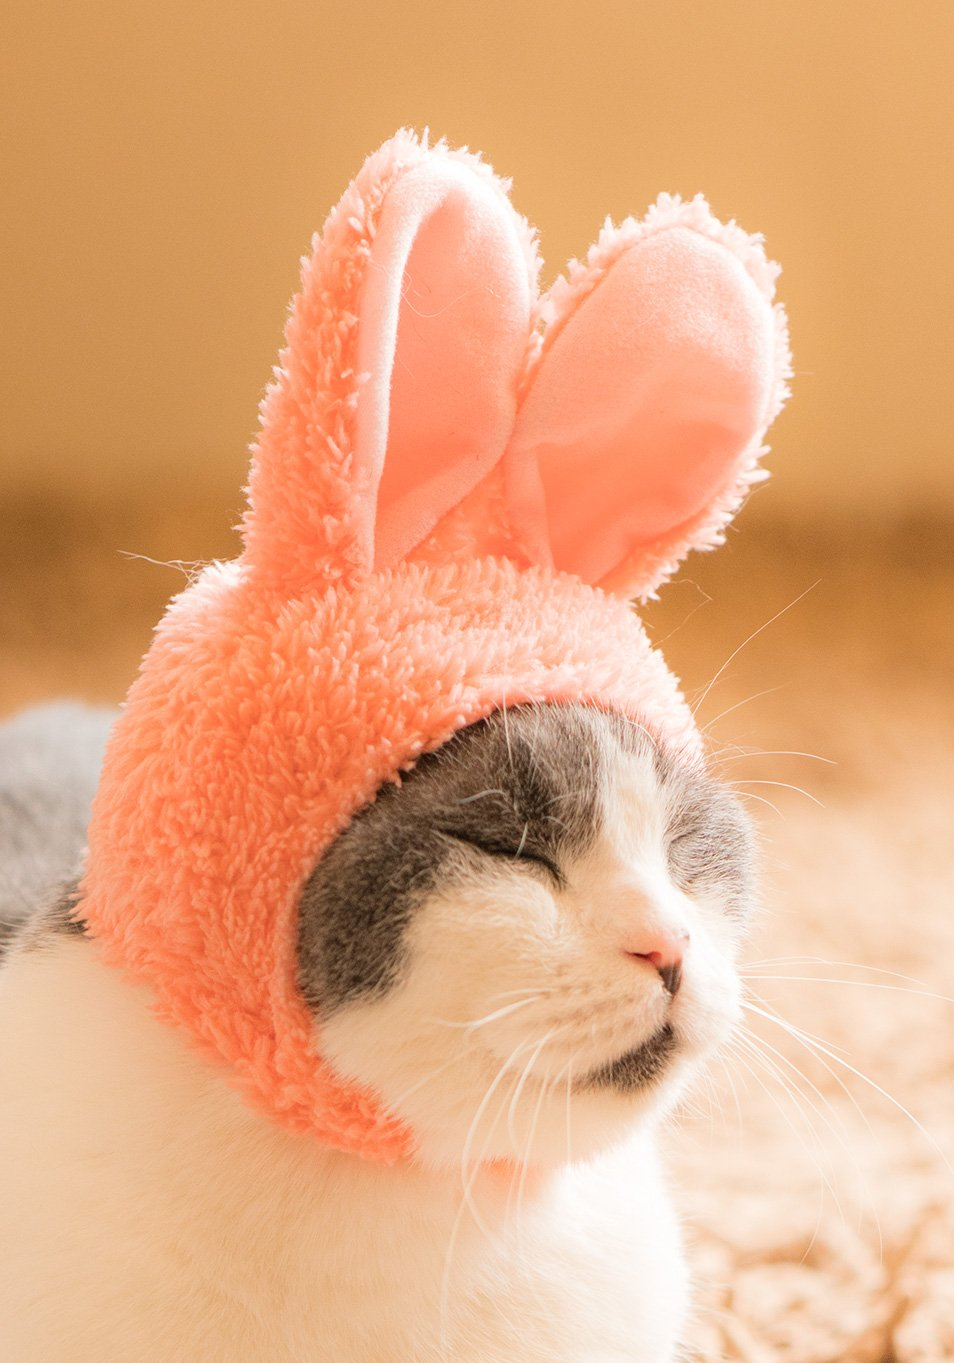 Soft Authentic Japanese Kawaii Design Animal-Safe Materials Rabbit Pet Hat Blind Box Includes 1 of 6 Cute Styles Comfortable and Easy-to-Use Kitty Hood Kitan Club Cat Cap